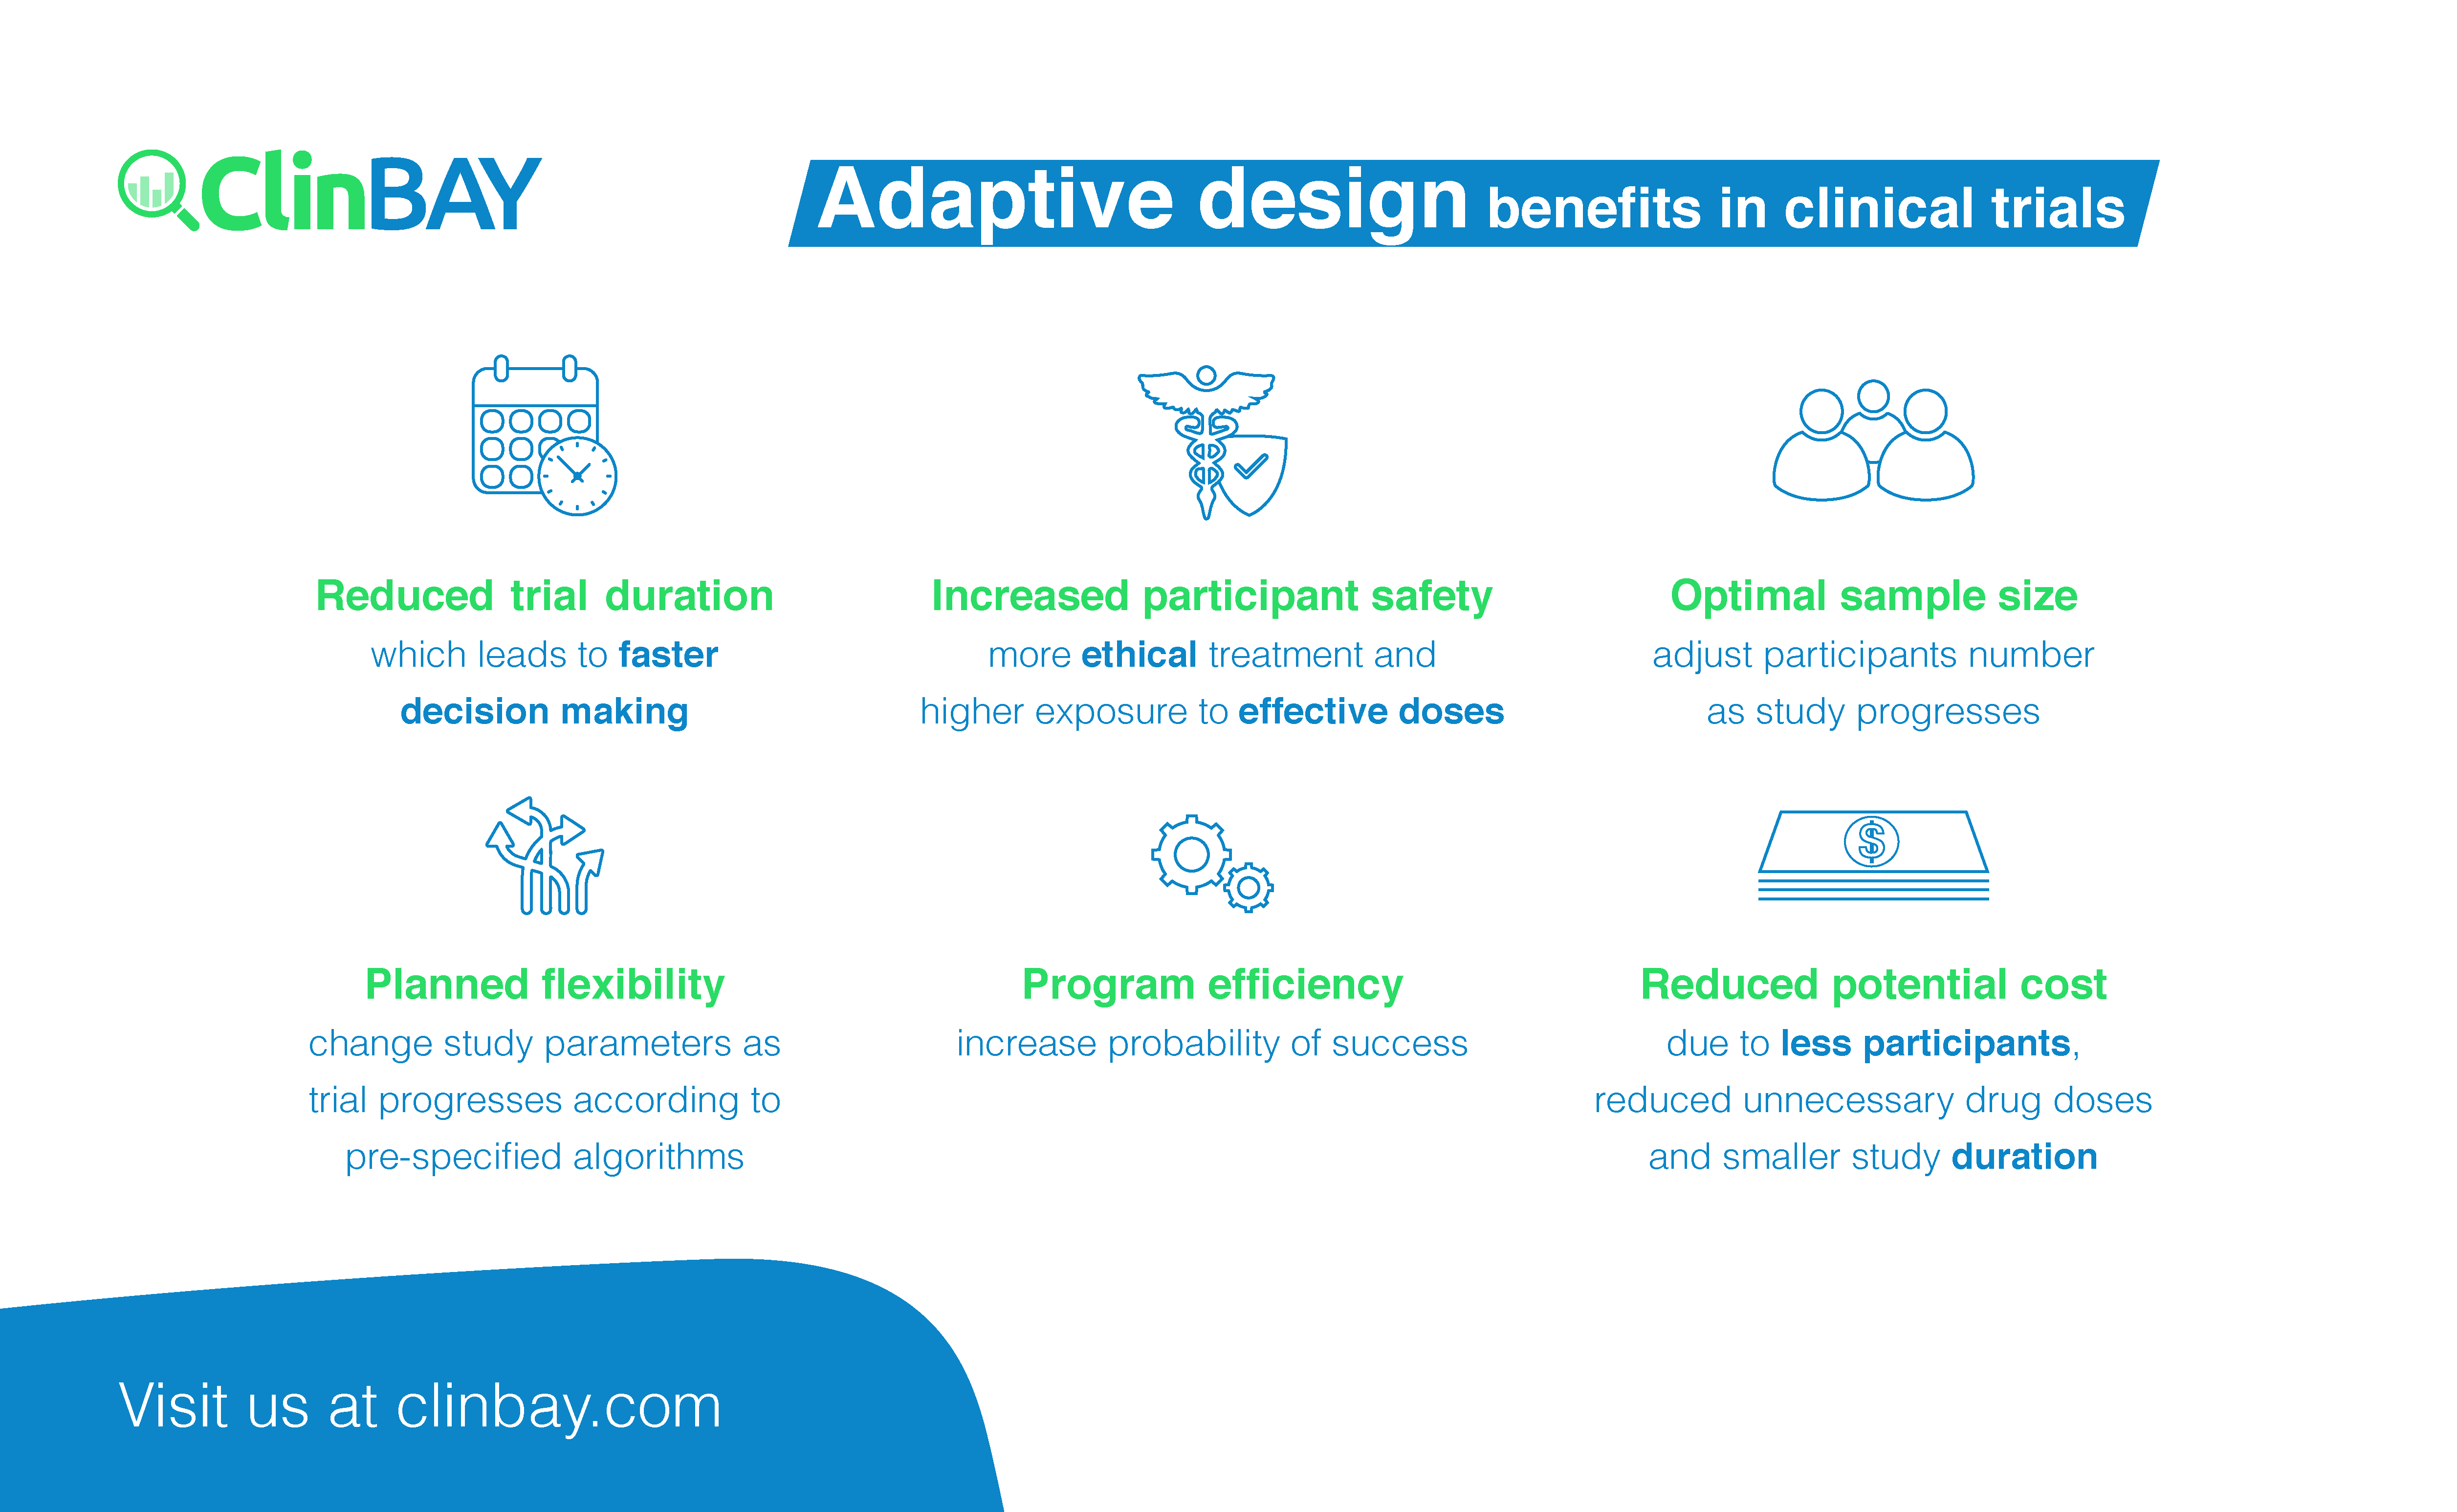 Adaptive design benefits in clinical trials